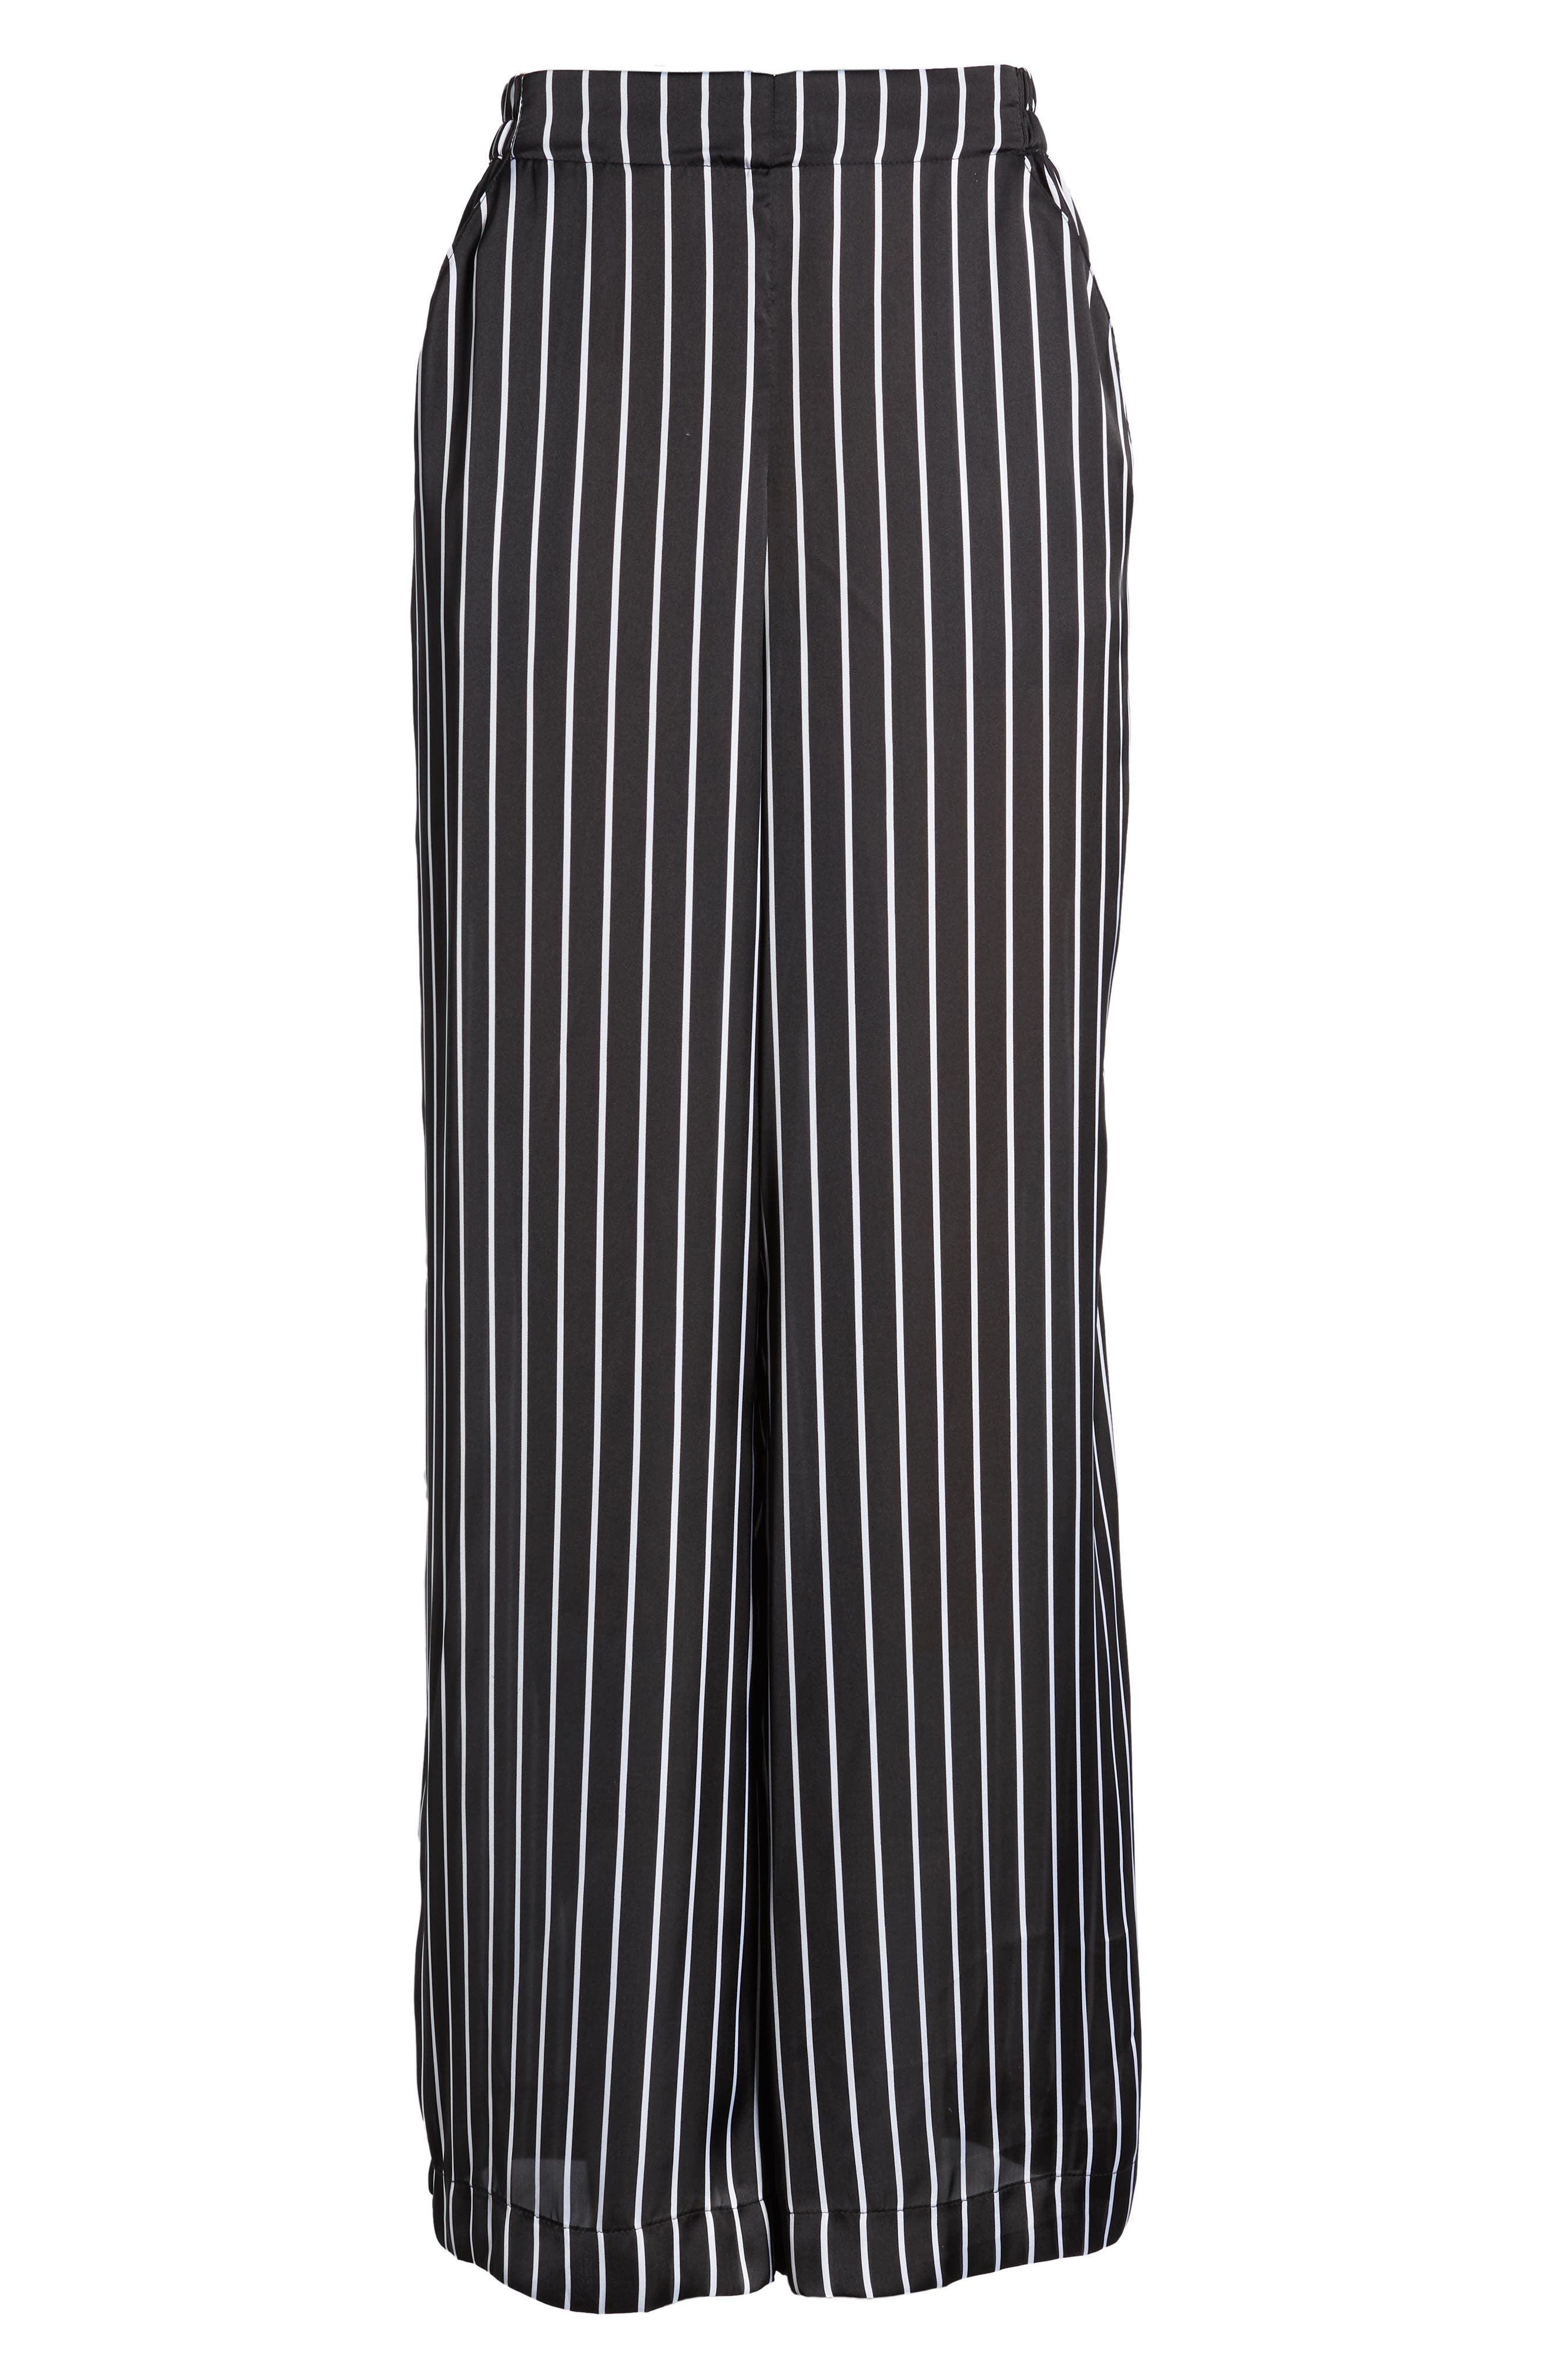 Kenneth Cole Wide Leg Pants,                             Alternate thumbnail 7, color,                             STREET STRIPE BLACK